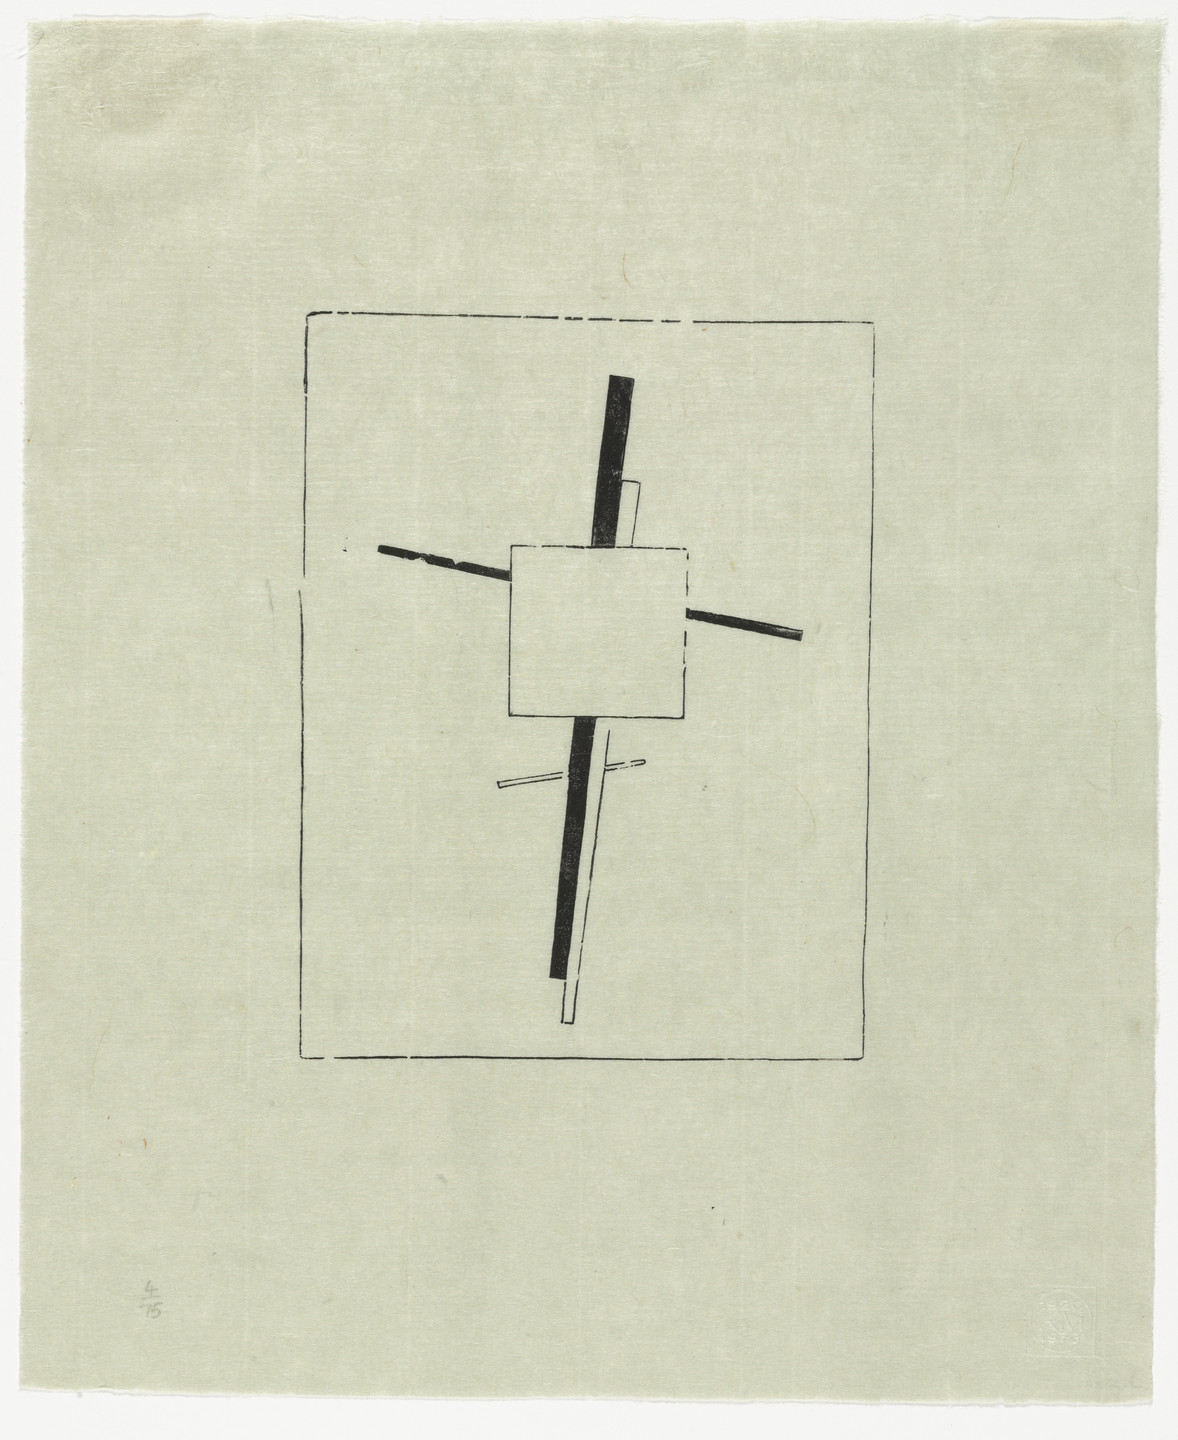 Kazimir Malevich. Untitled (Suprematist Cross). 1920, printed 1973